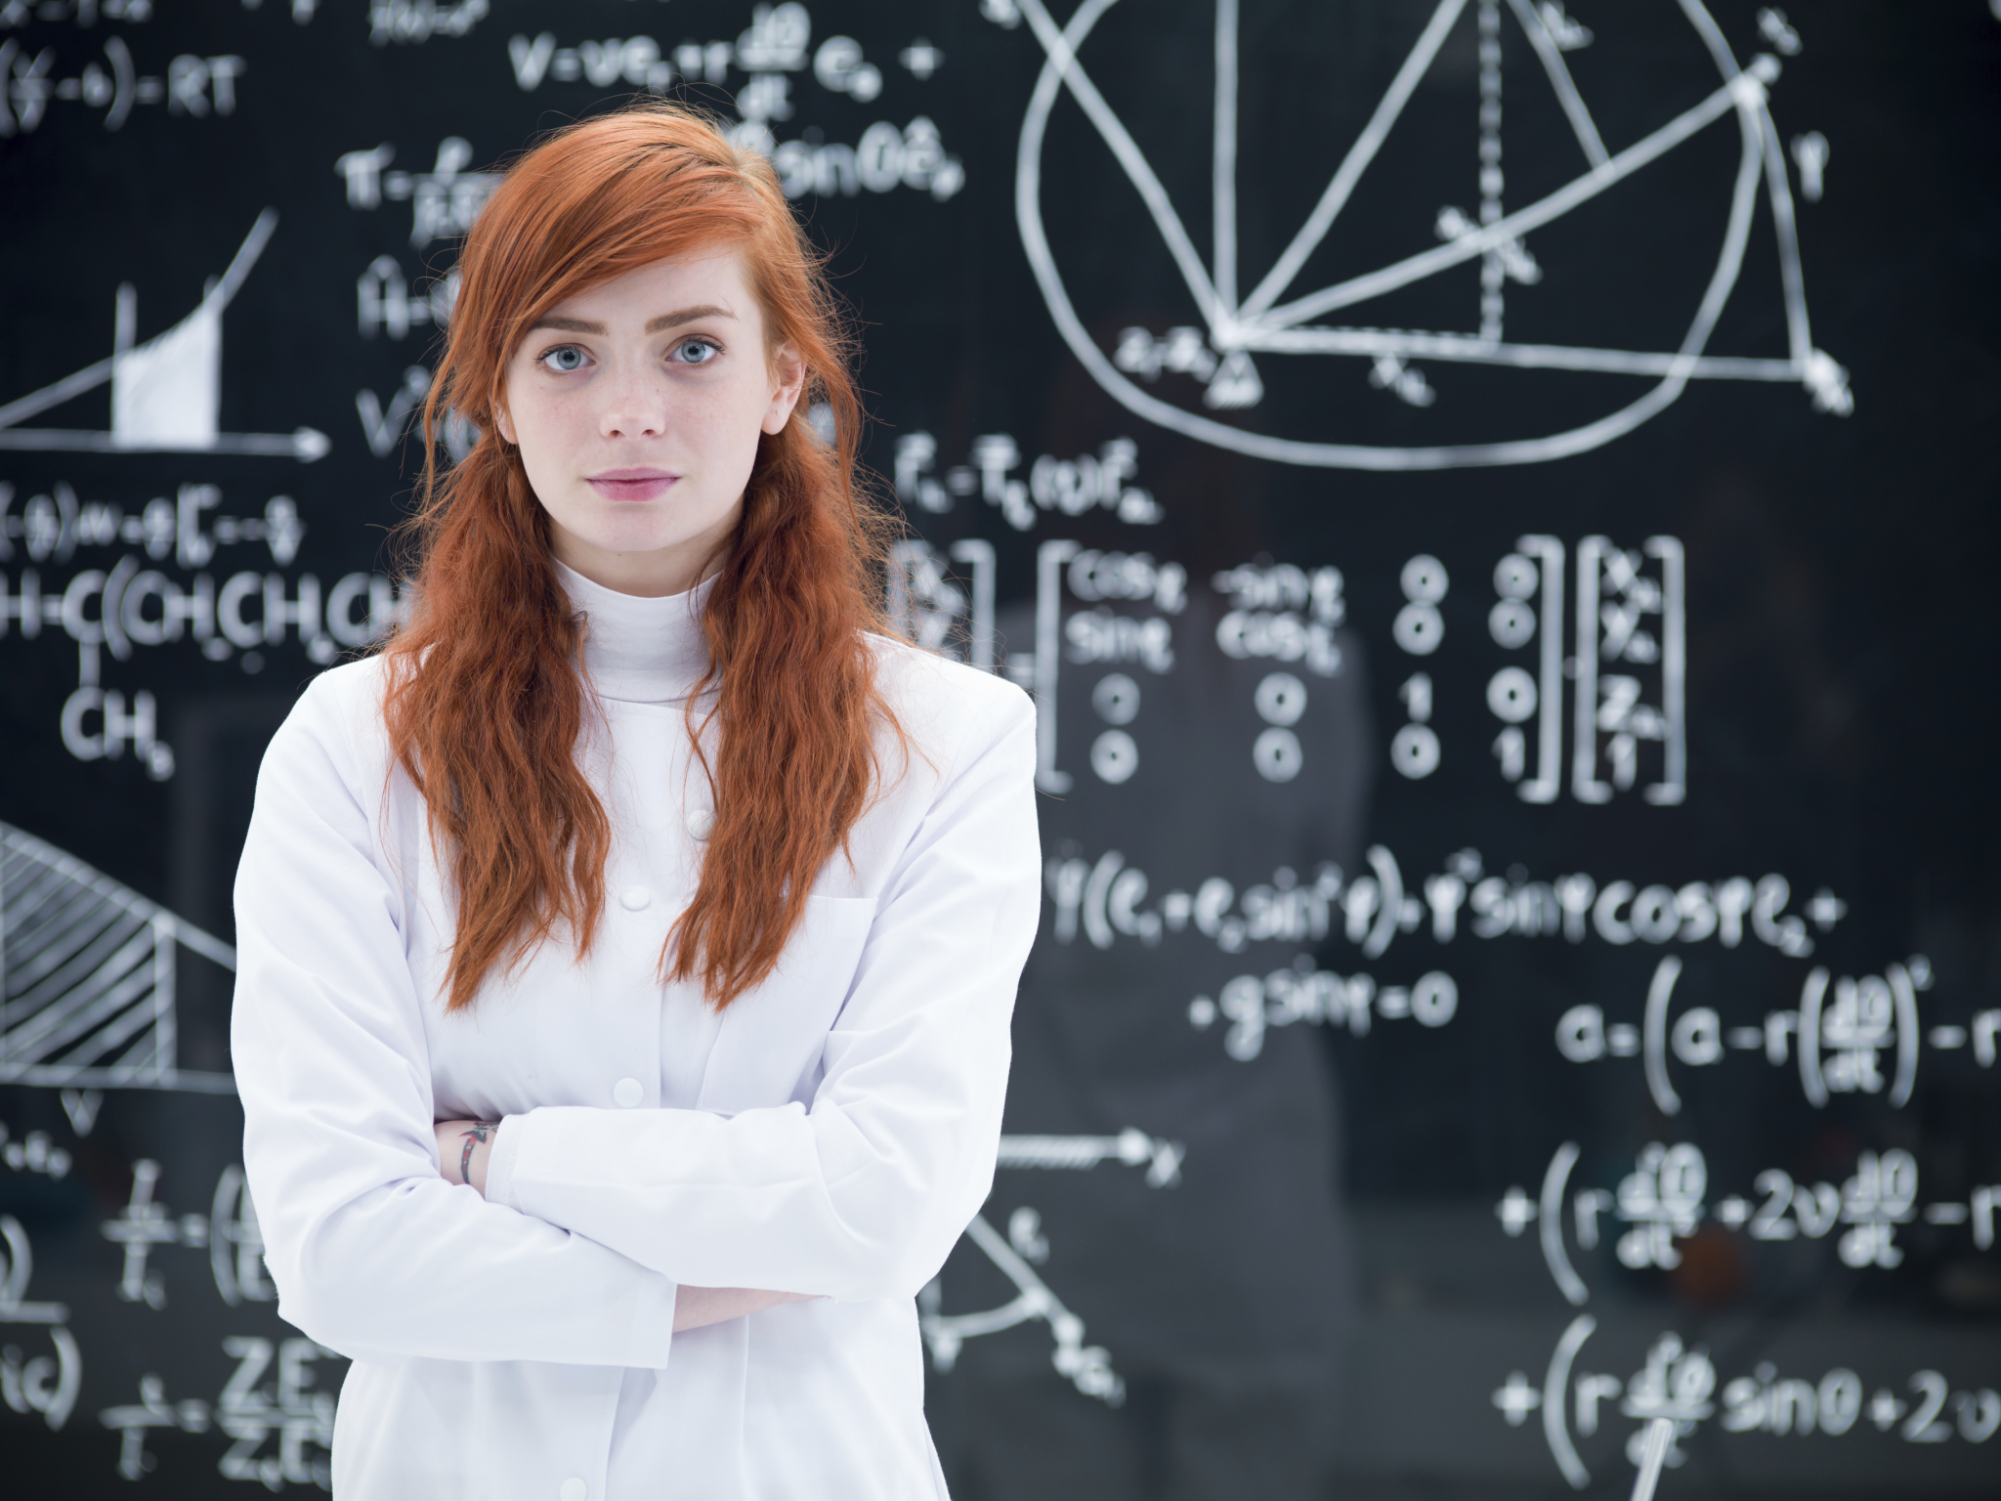 women with science The proportion of women with degrees in computer sciences has increased slightly at the master's and doctoral level but has declined at the bachelor's level.